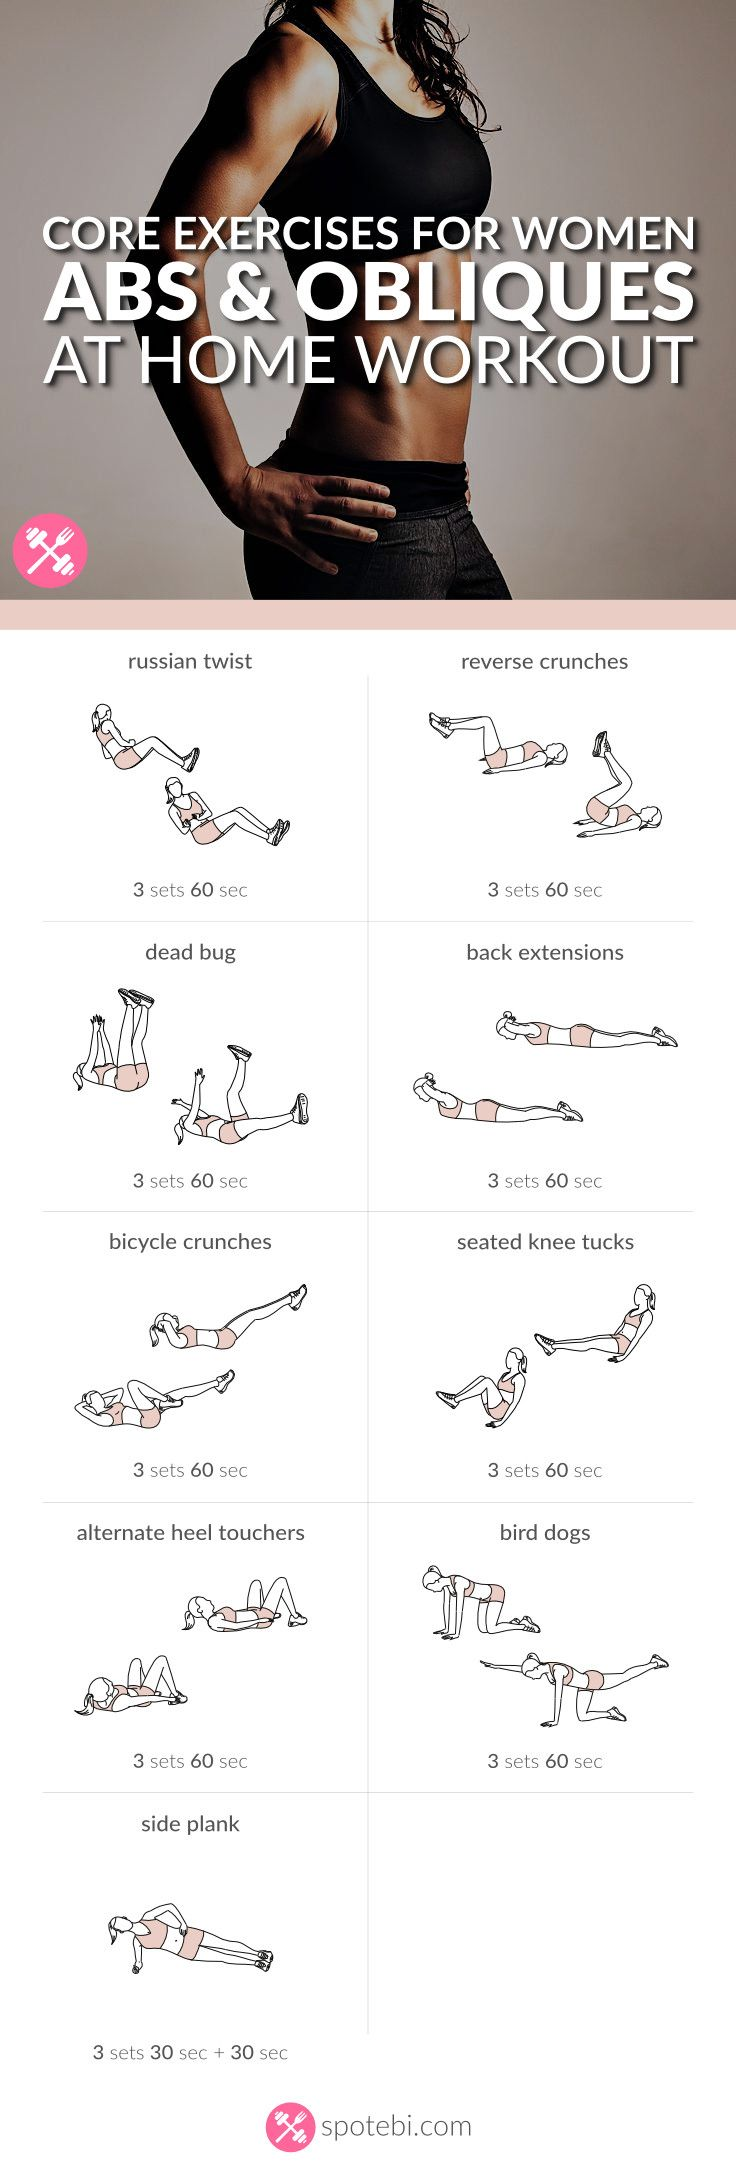 Work on your abs and obliques with these core exercises for women. A 30 minute waist cinching workout to activate your obliques and define your waistline! http://www.spotebi.com/workout-routines/core-exercises-for-women-abs-obliques-workout/